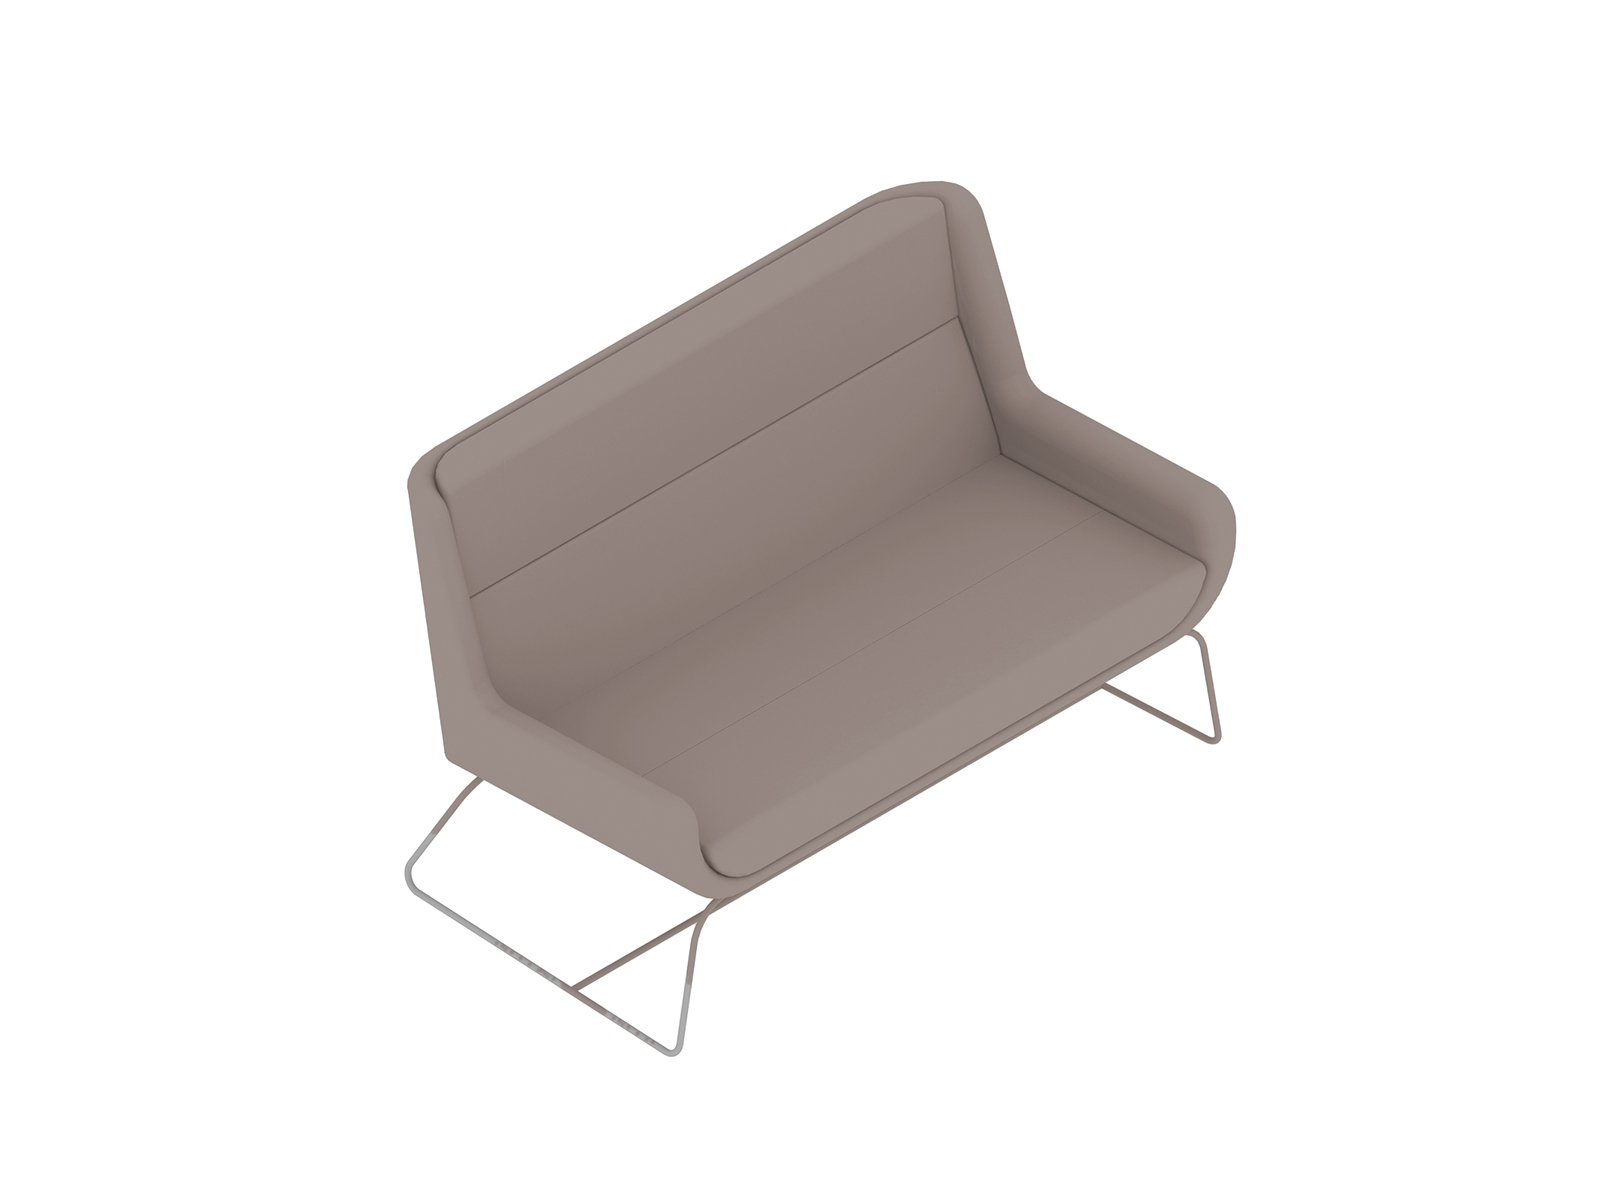 Groovy Hush Sofalow Back2 Seatsled Base 3D Product Models Pdpeps Interior Chair Design Pdpepsorg